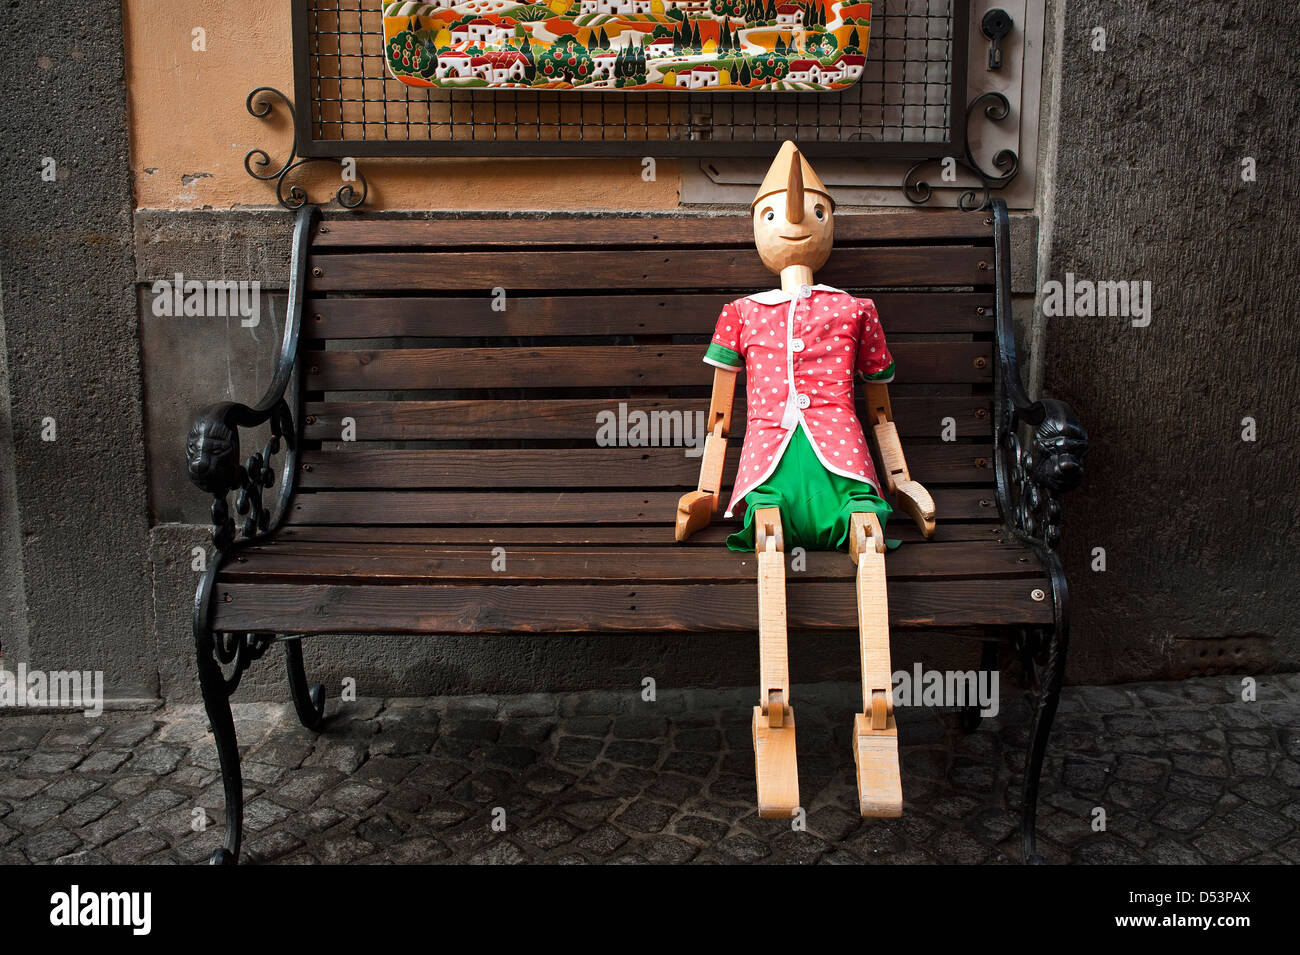 Enjoyable Pinocchio Sitting On A Wooden Bench Orvieto Umbria Italy Ocoug Best Dining Table And Chair Ideas Images Ocougorg